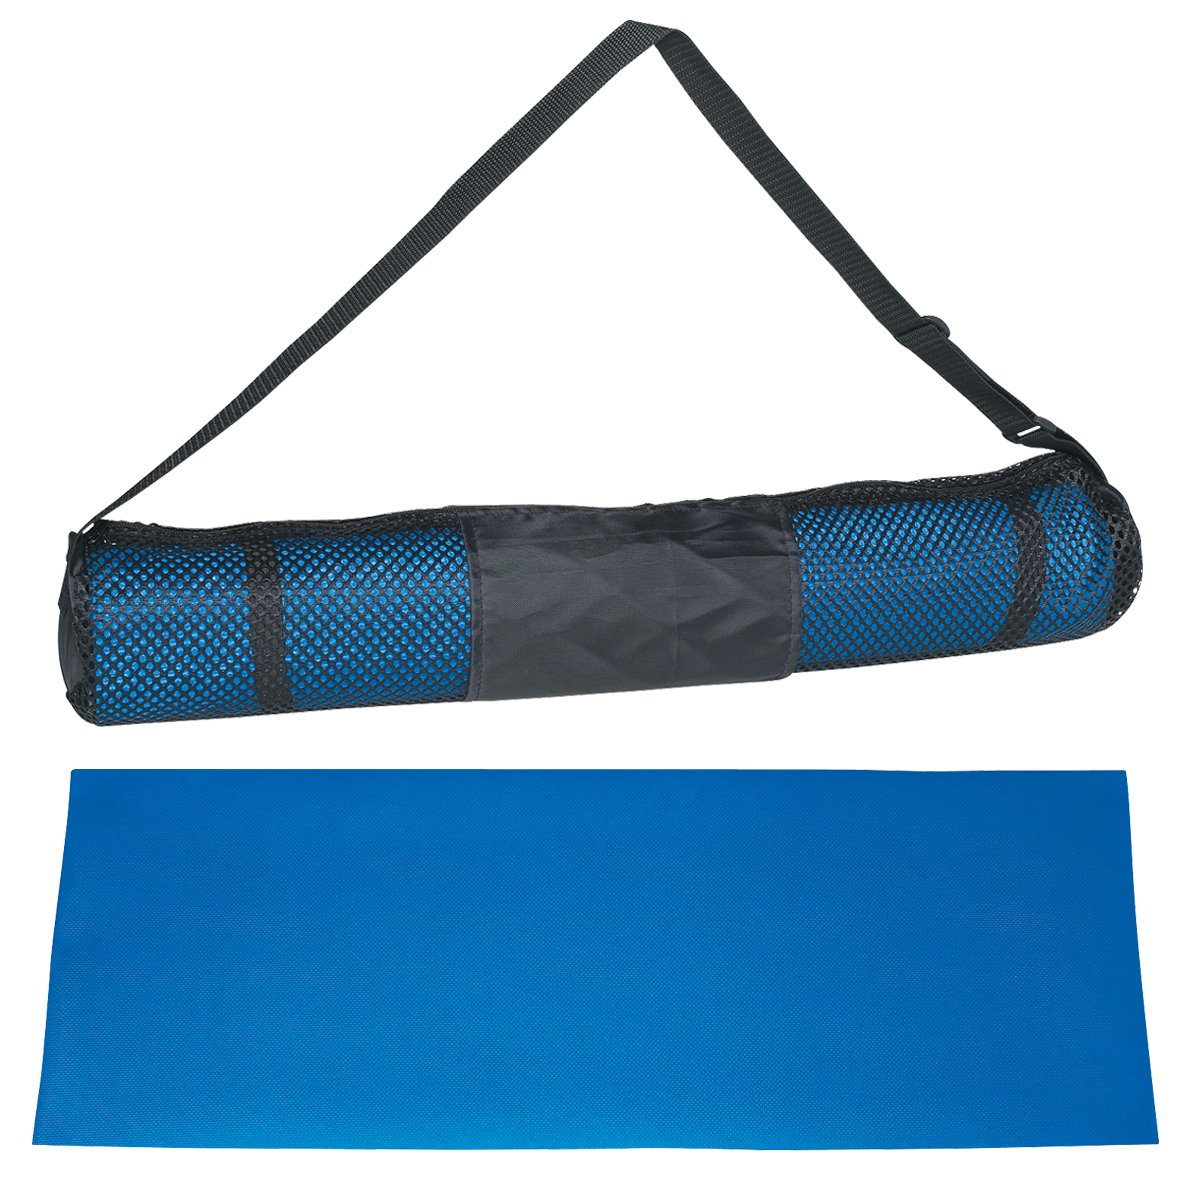 The shopping aisle All Purpose High Density Non-Slip Exercise Yoga Floor Mat with Carrying Case